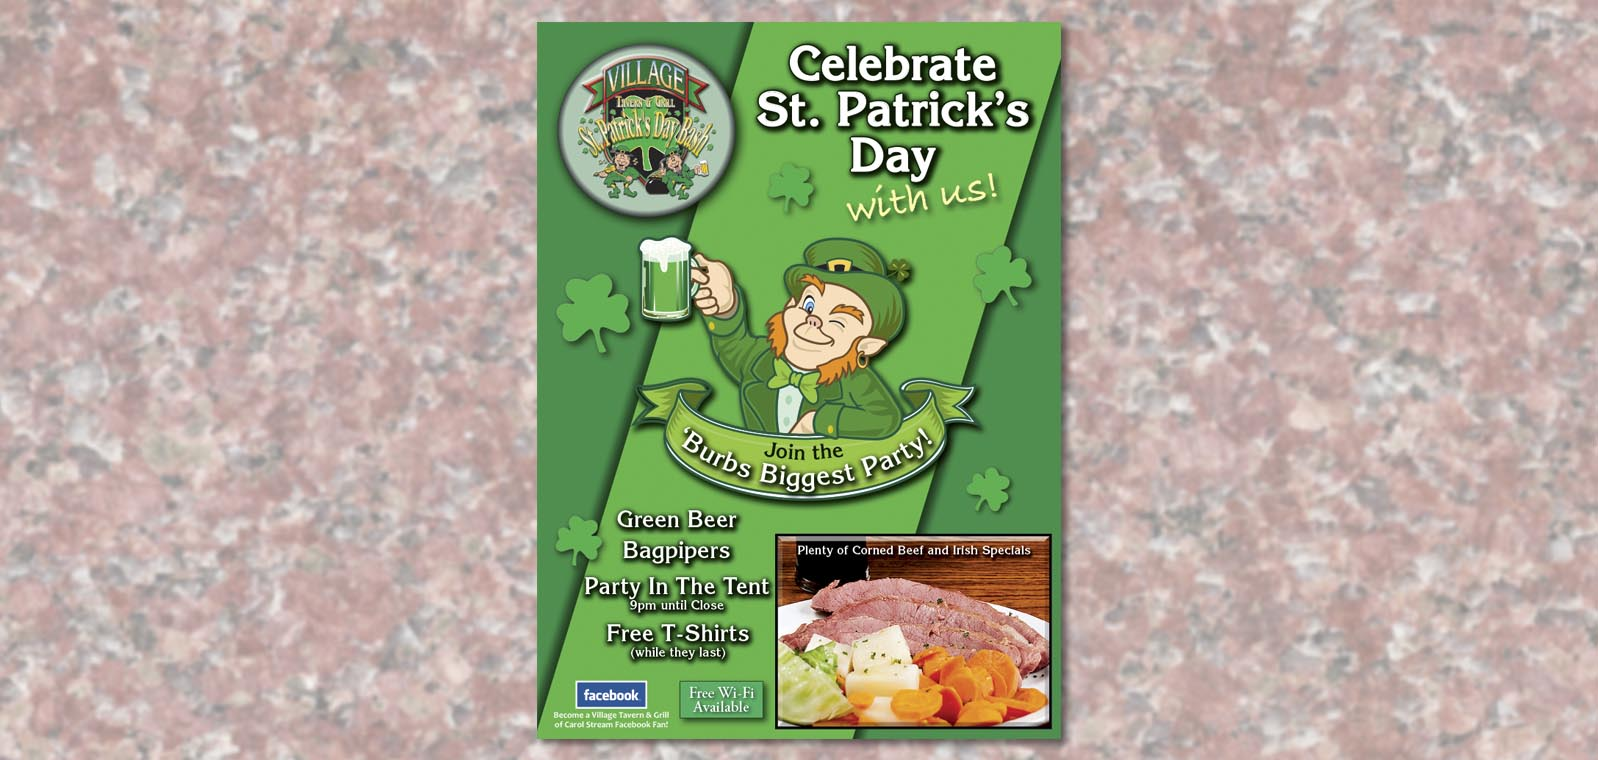 St. Patrick's Day table tent design from Roselle Graphic Designer Controlled Color, Inc.